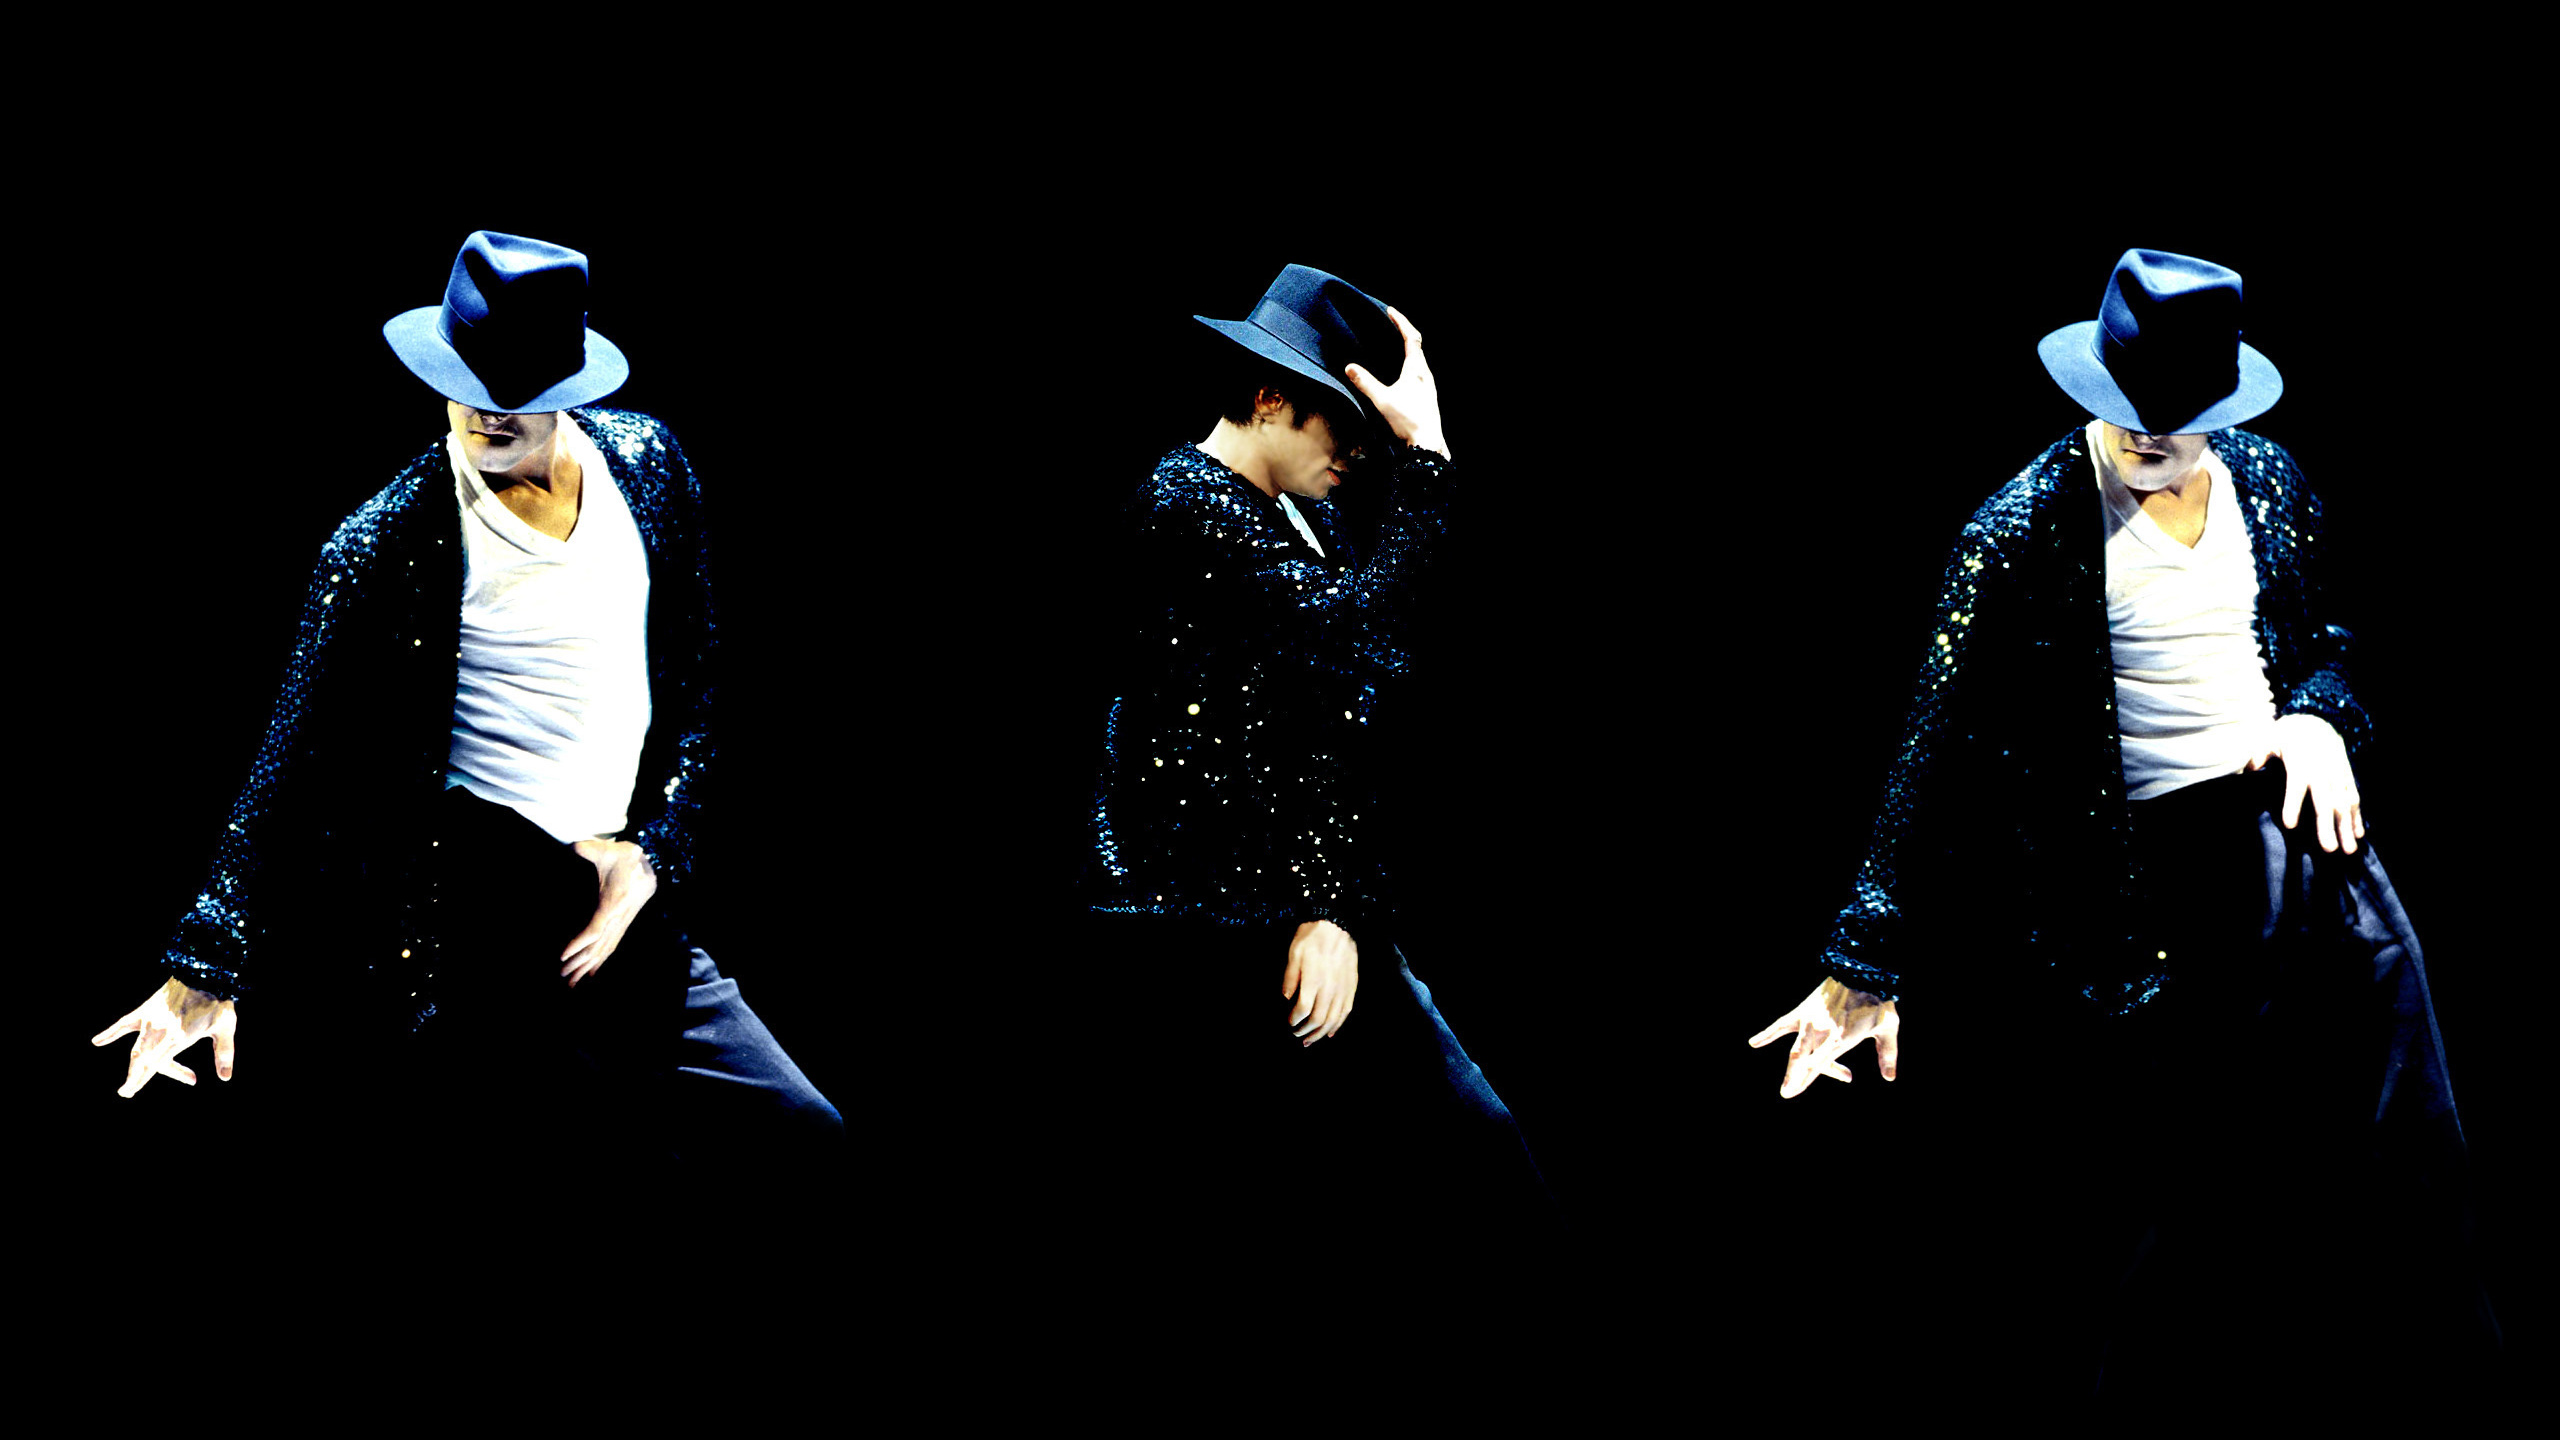 michael jackson full hd wallpaper and background image | 2560x1440